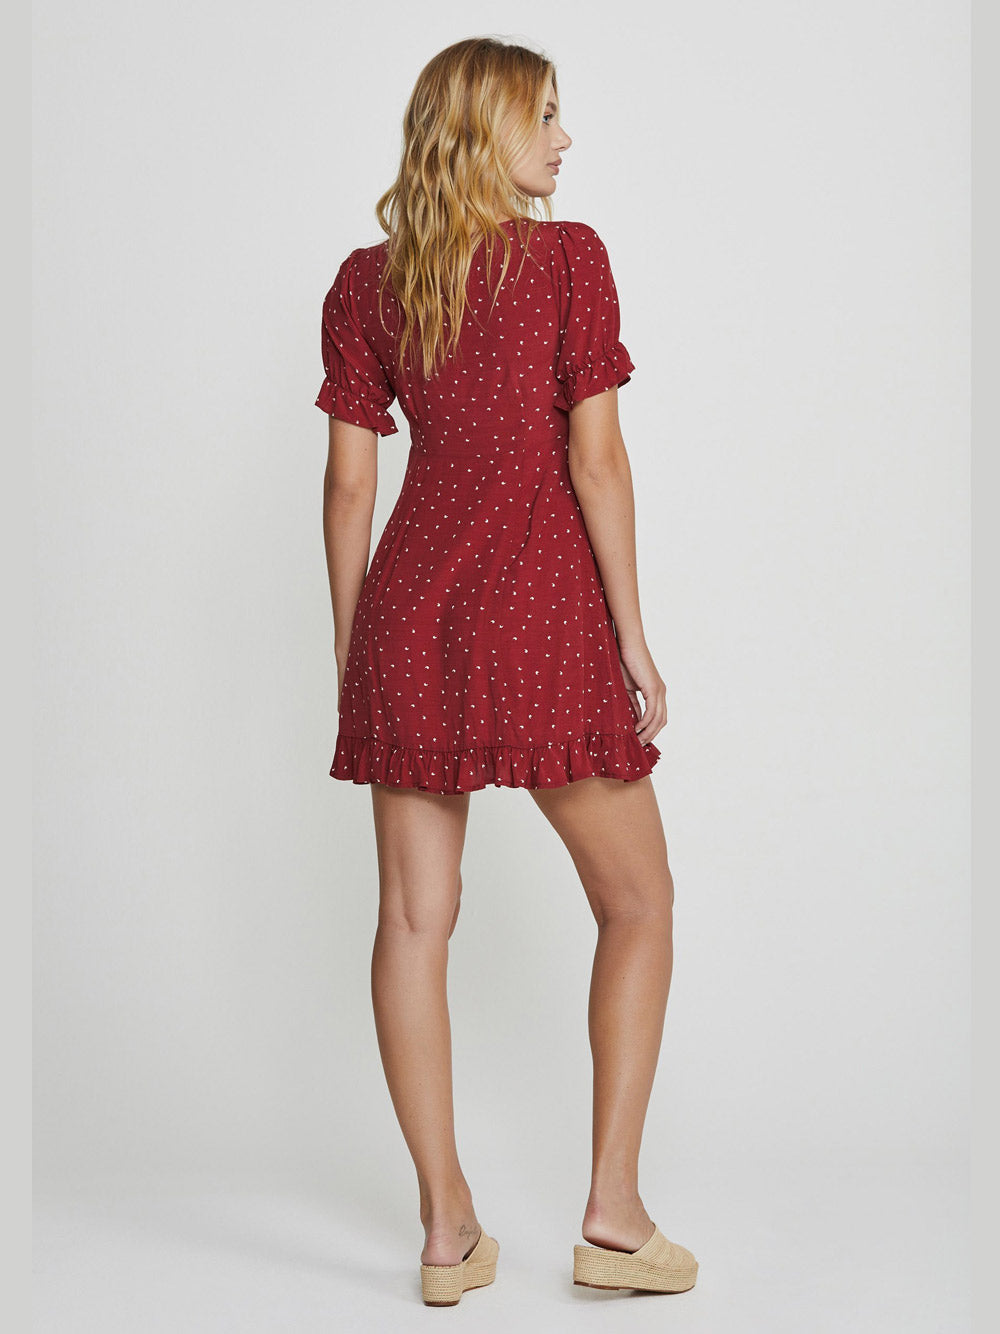 AUGUSTE Luna Dusk Mini Dress - Wine